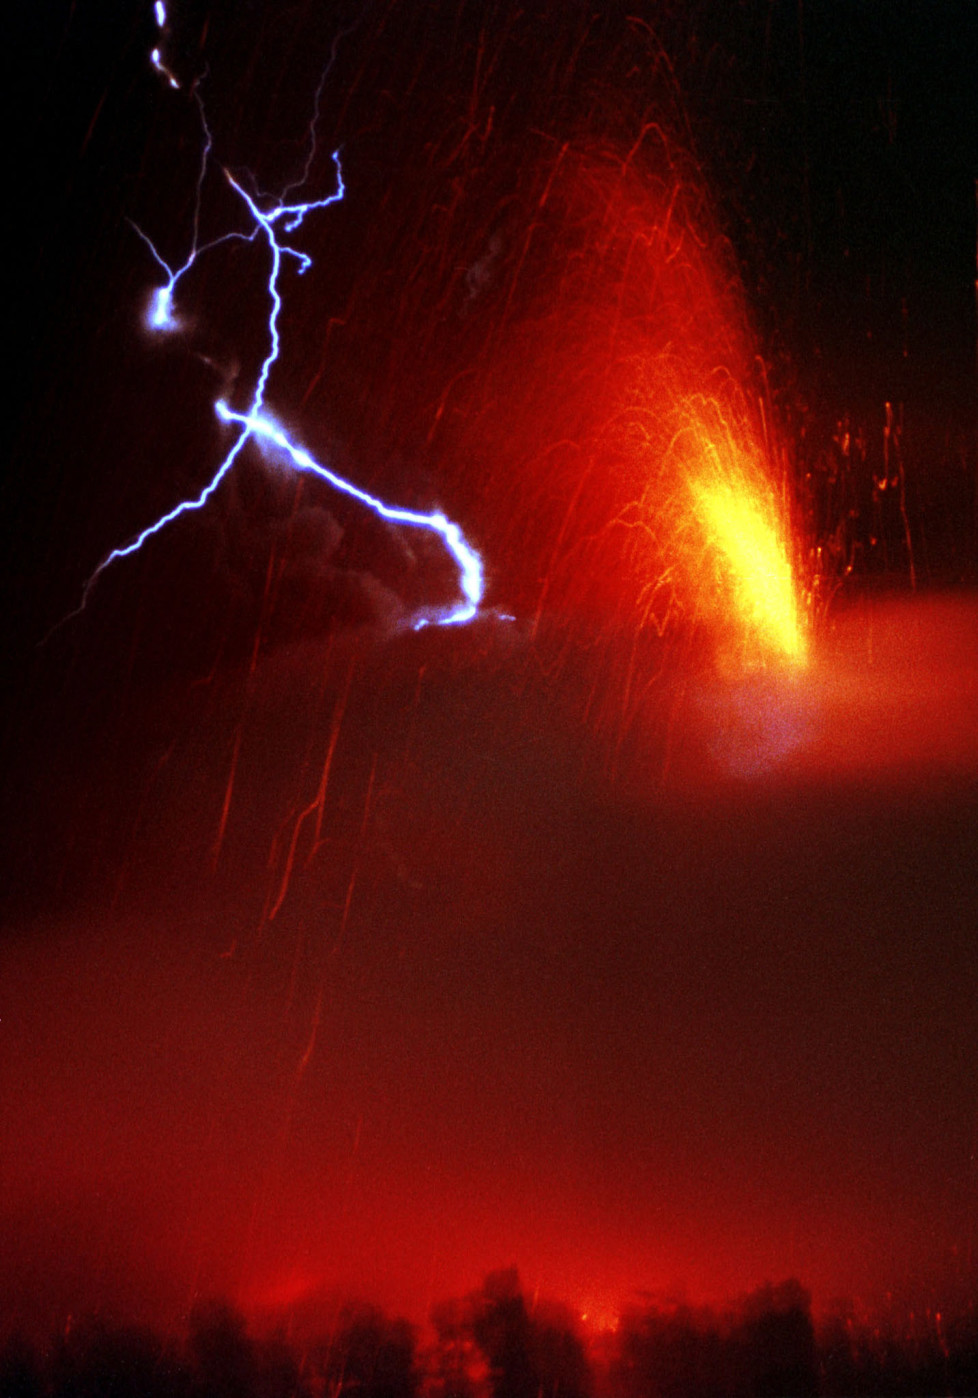 Lightning strikes over Pacaya Volcano, while it erupts lava and ash in Amatitlan, Guatemala, January 17, 2000. The Pacaya volcano, some 30 miles (48 km) south of the capital, spewed lava 3,000 feet (914 meters) into the air. RM/ME - RTRBTWU